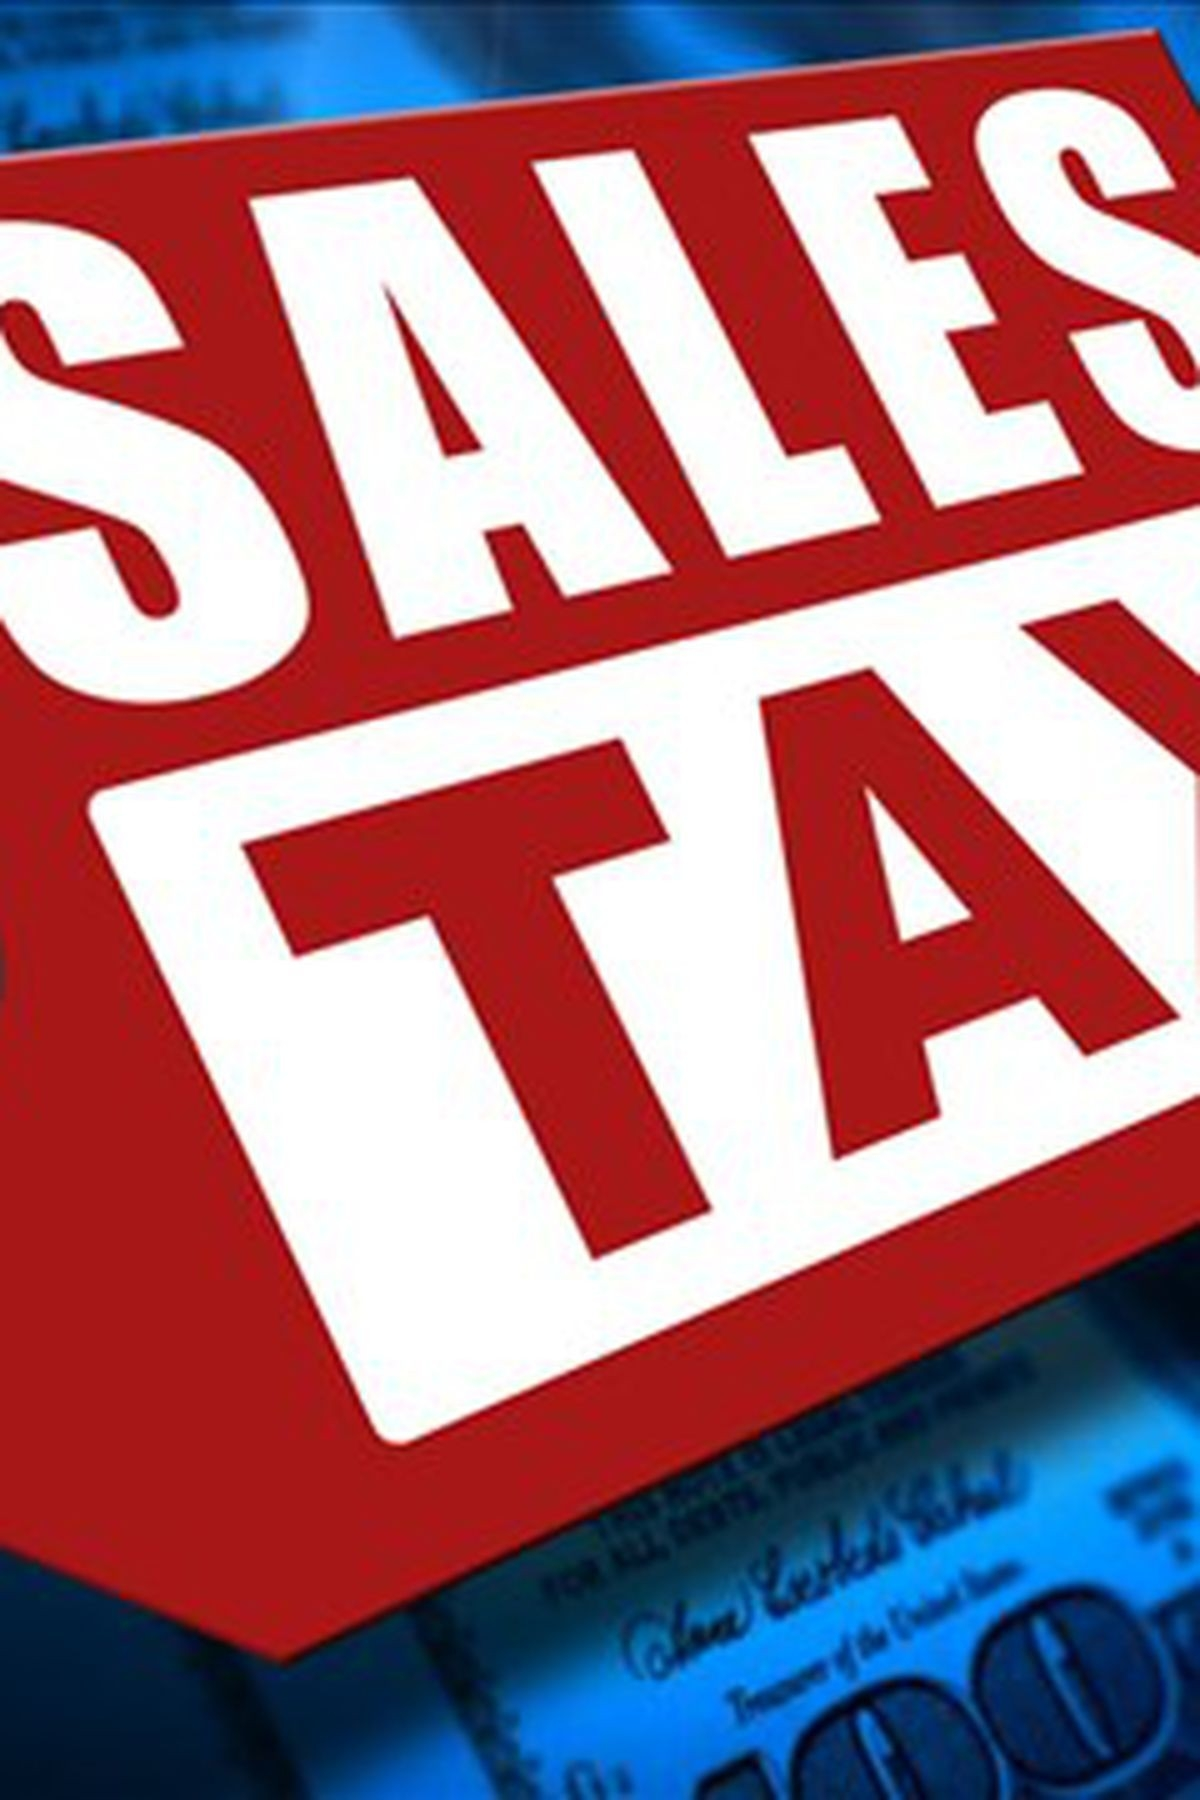 Louisiana To Have A 2-Day Sales Tax Holiday In November  Louisiana State Tax Day 2021